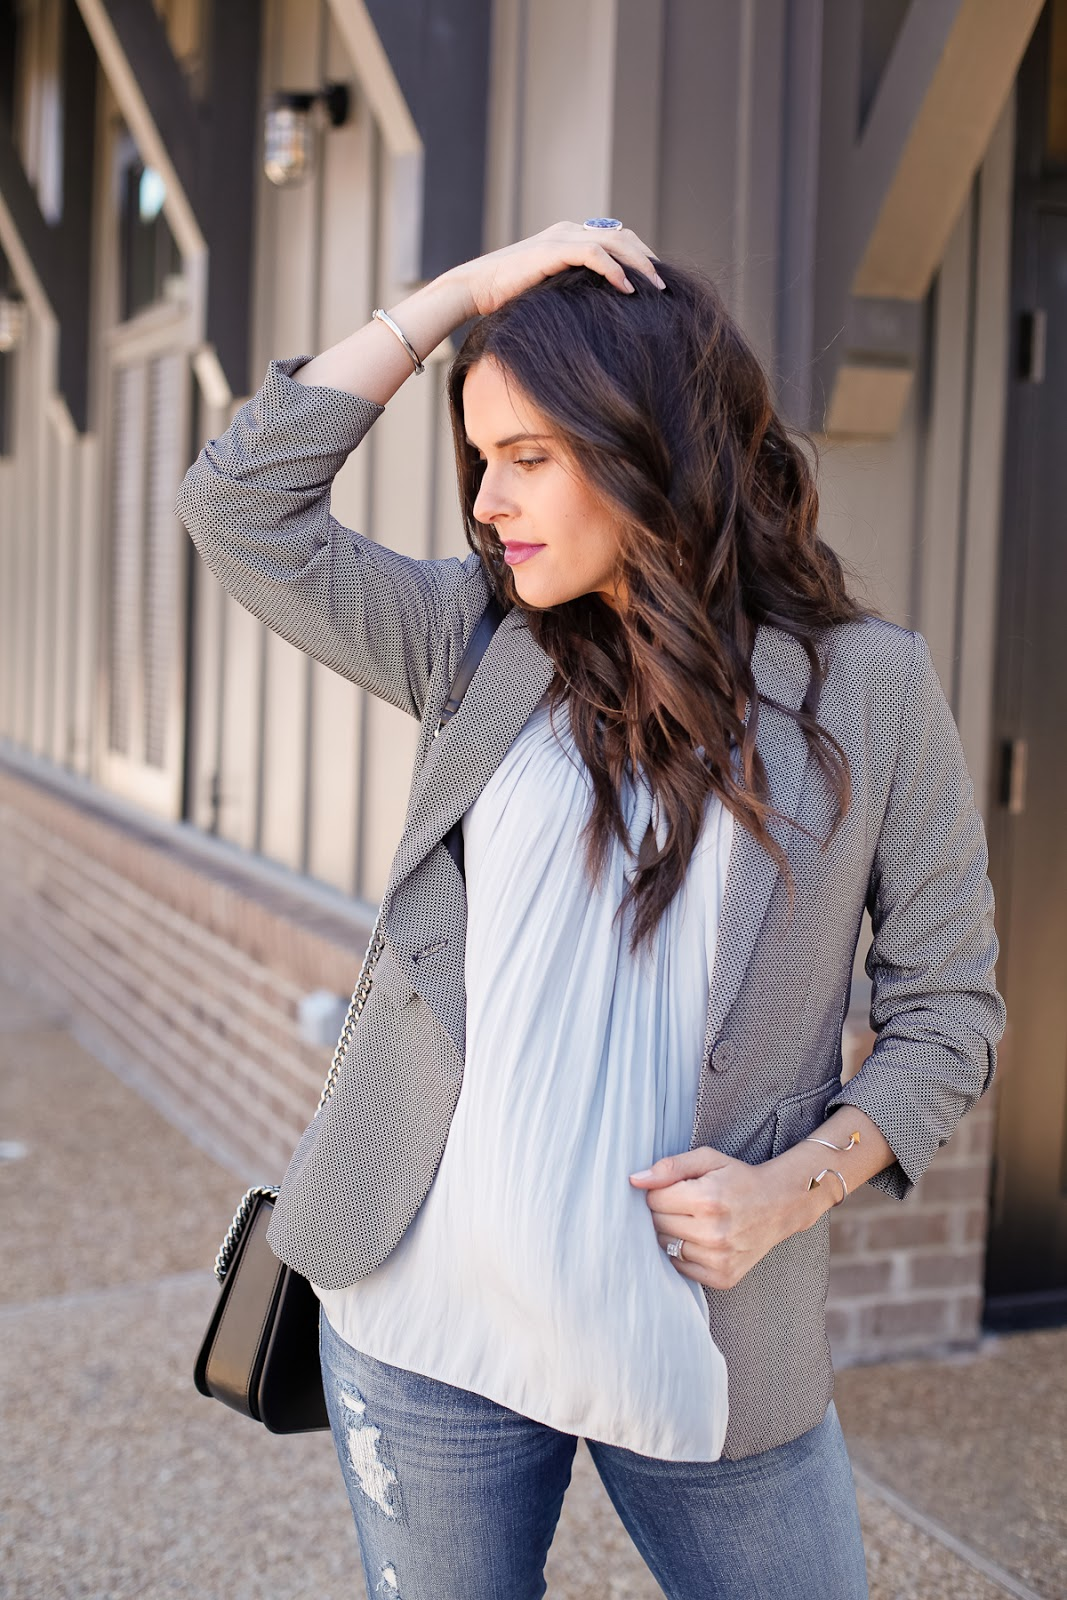 How to casually style a blazer while pregnant.